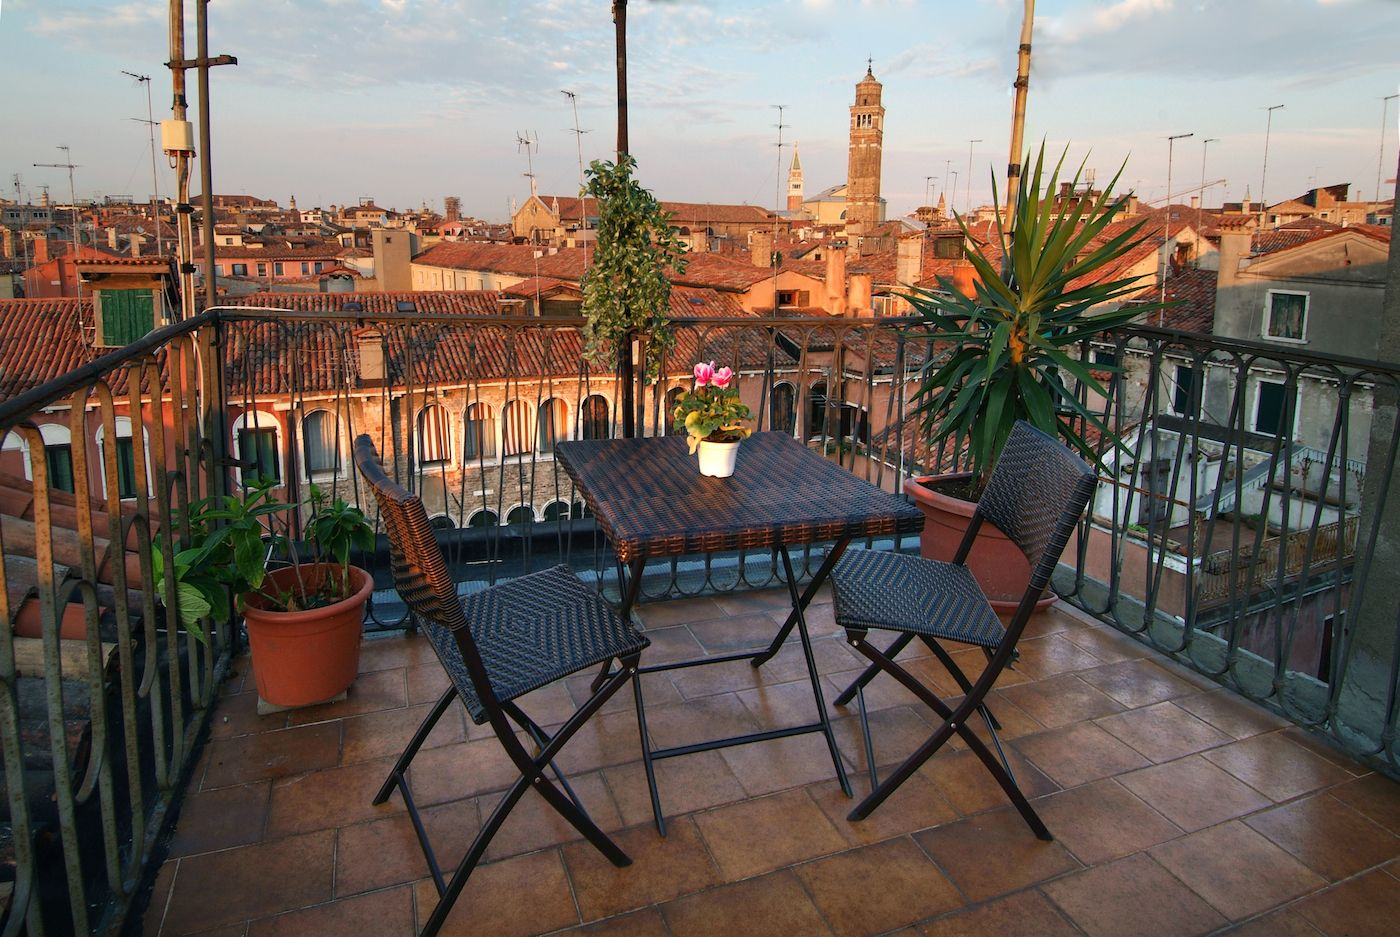 the 4th floor roof-top terrace offers a great panoramic view over the San Marco district